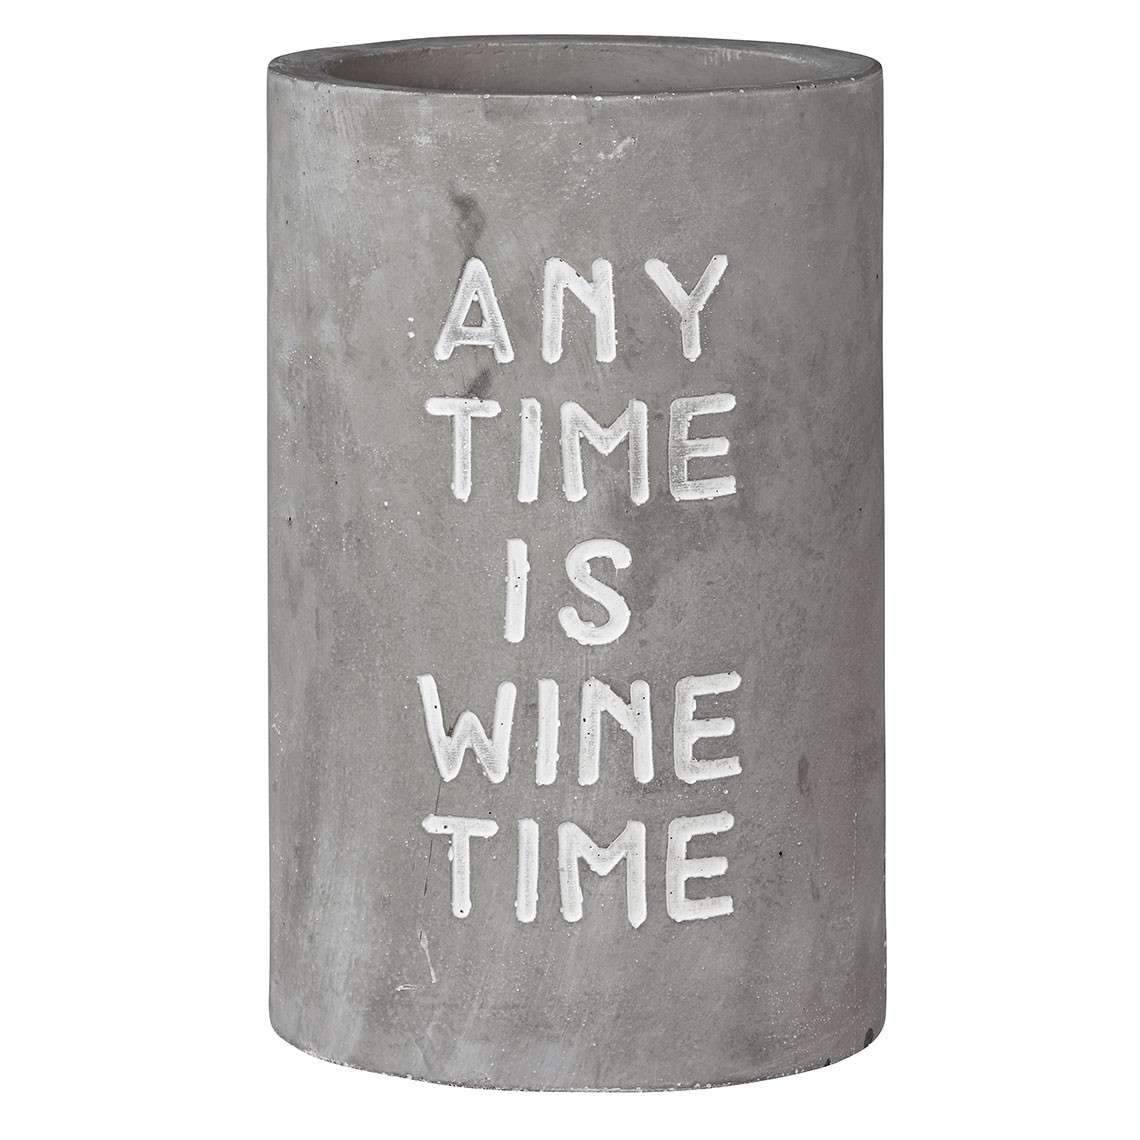 Weink hler aus Beton Any Time Is Wine Time 600x600 2x